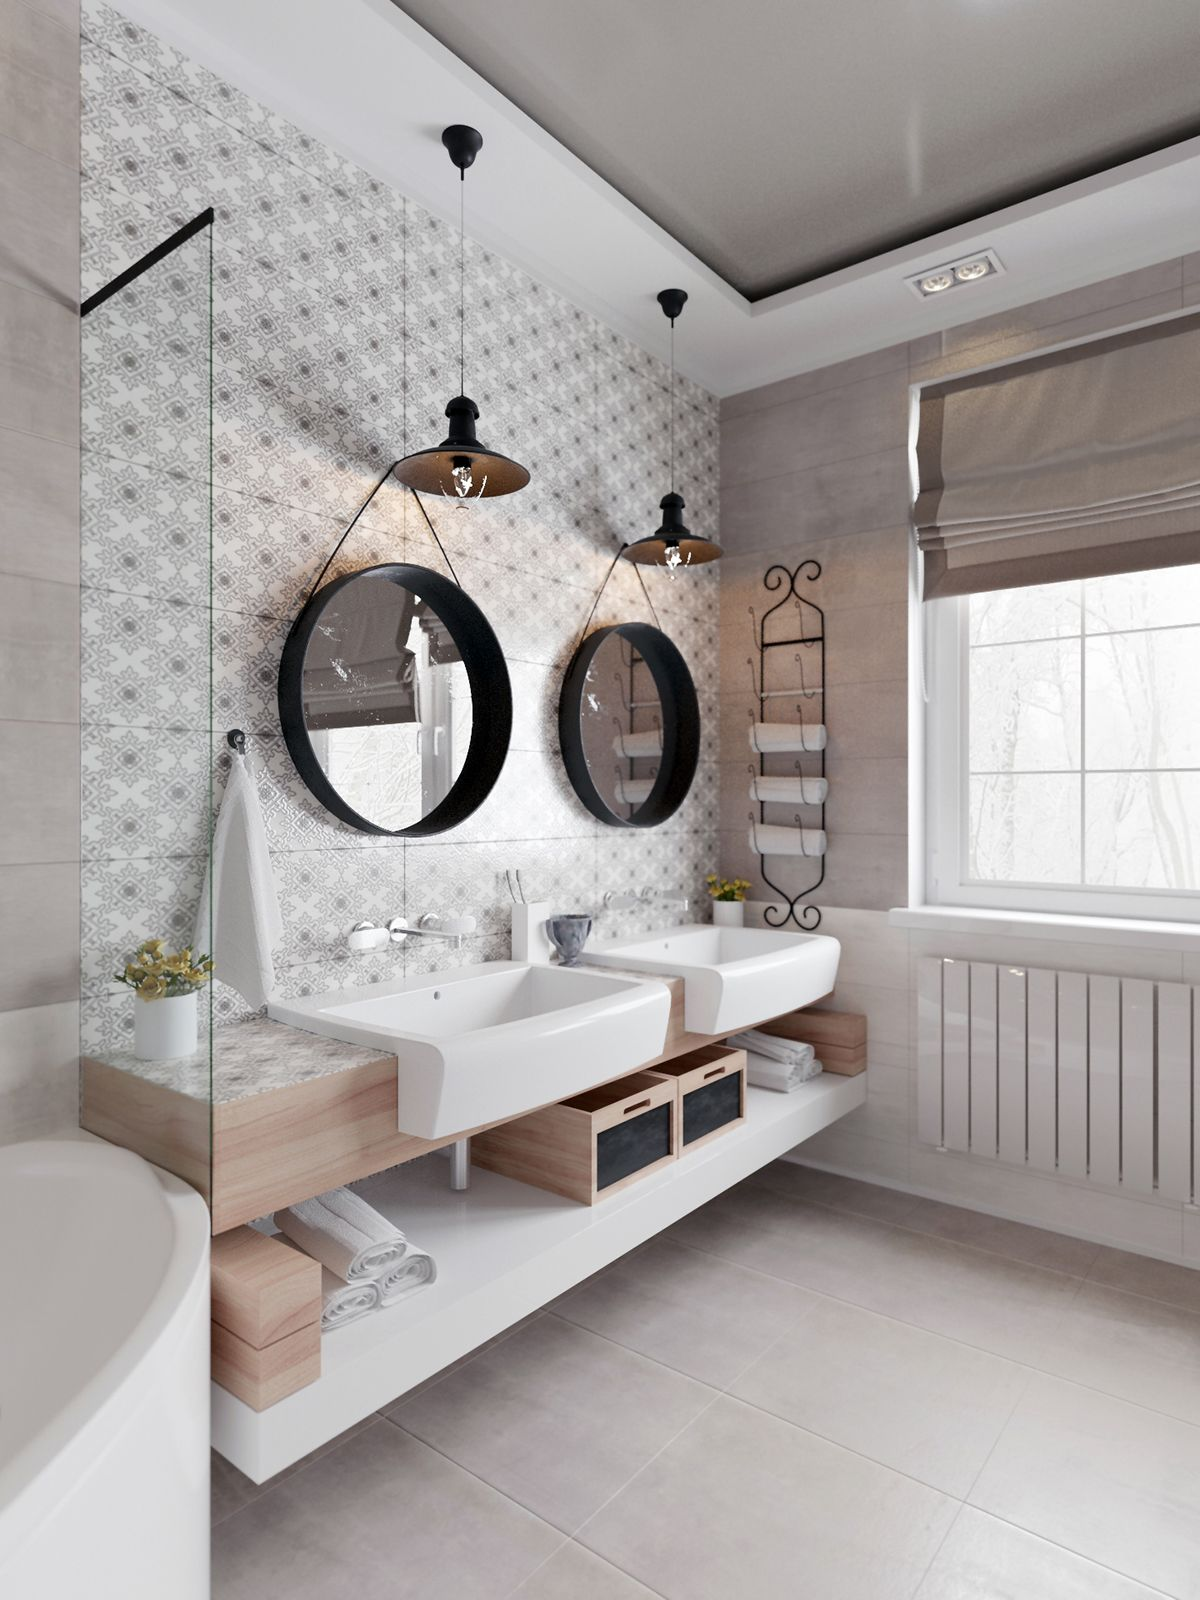 Bathroom In Scandinavian Style Pinterest Scandinavian Style Bathroom And Style